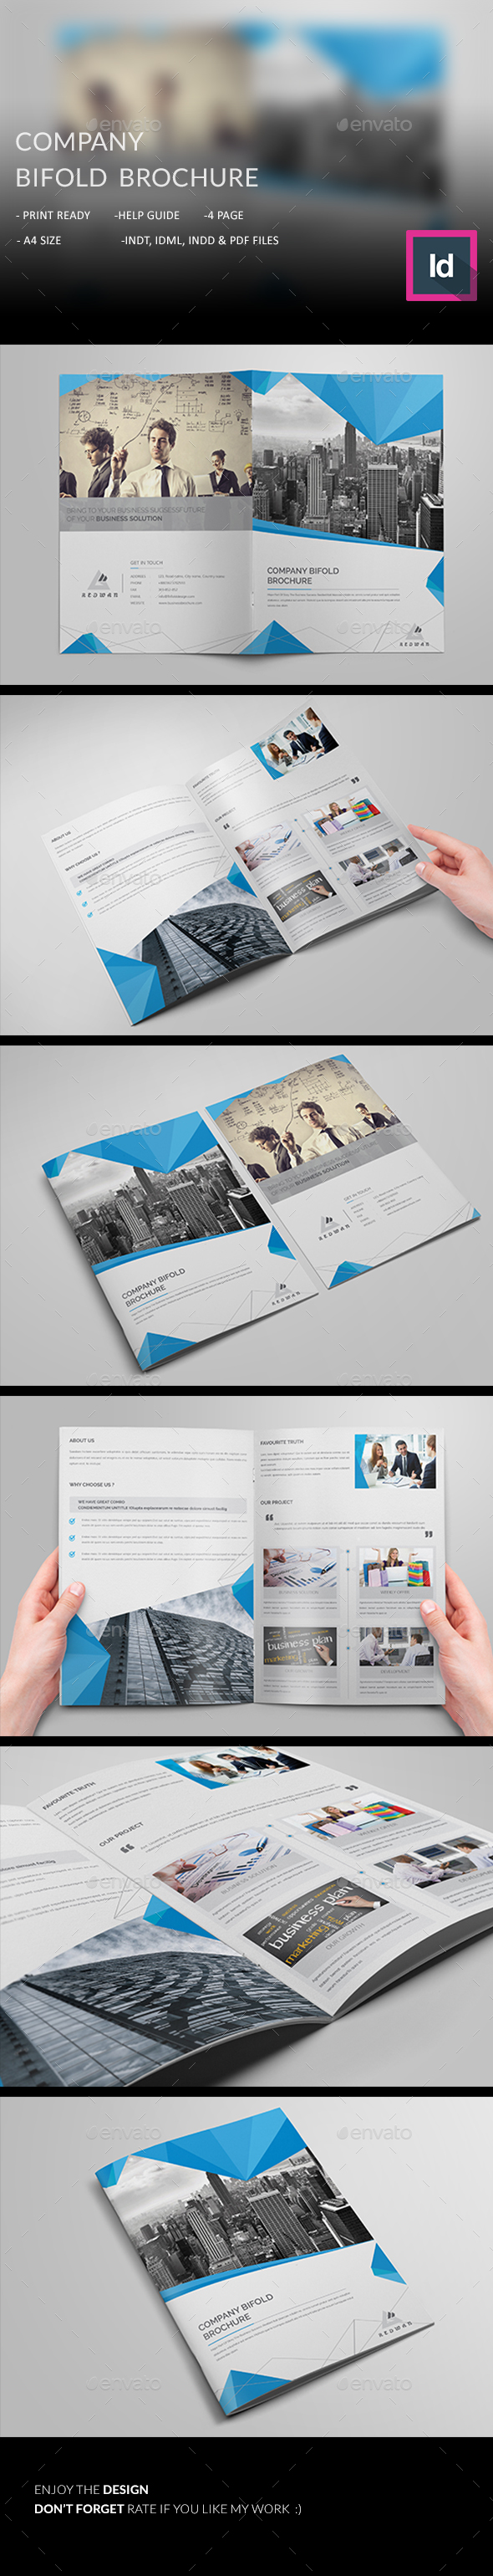 Company Bifold Brochure  - Corporate Brochures